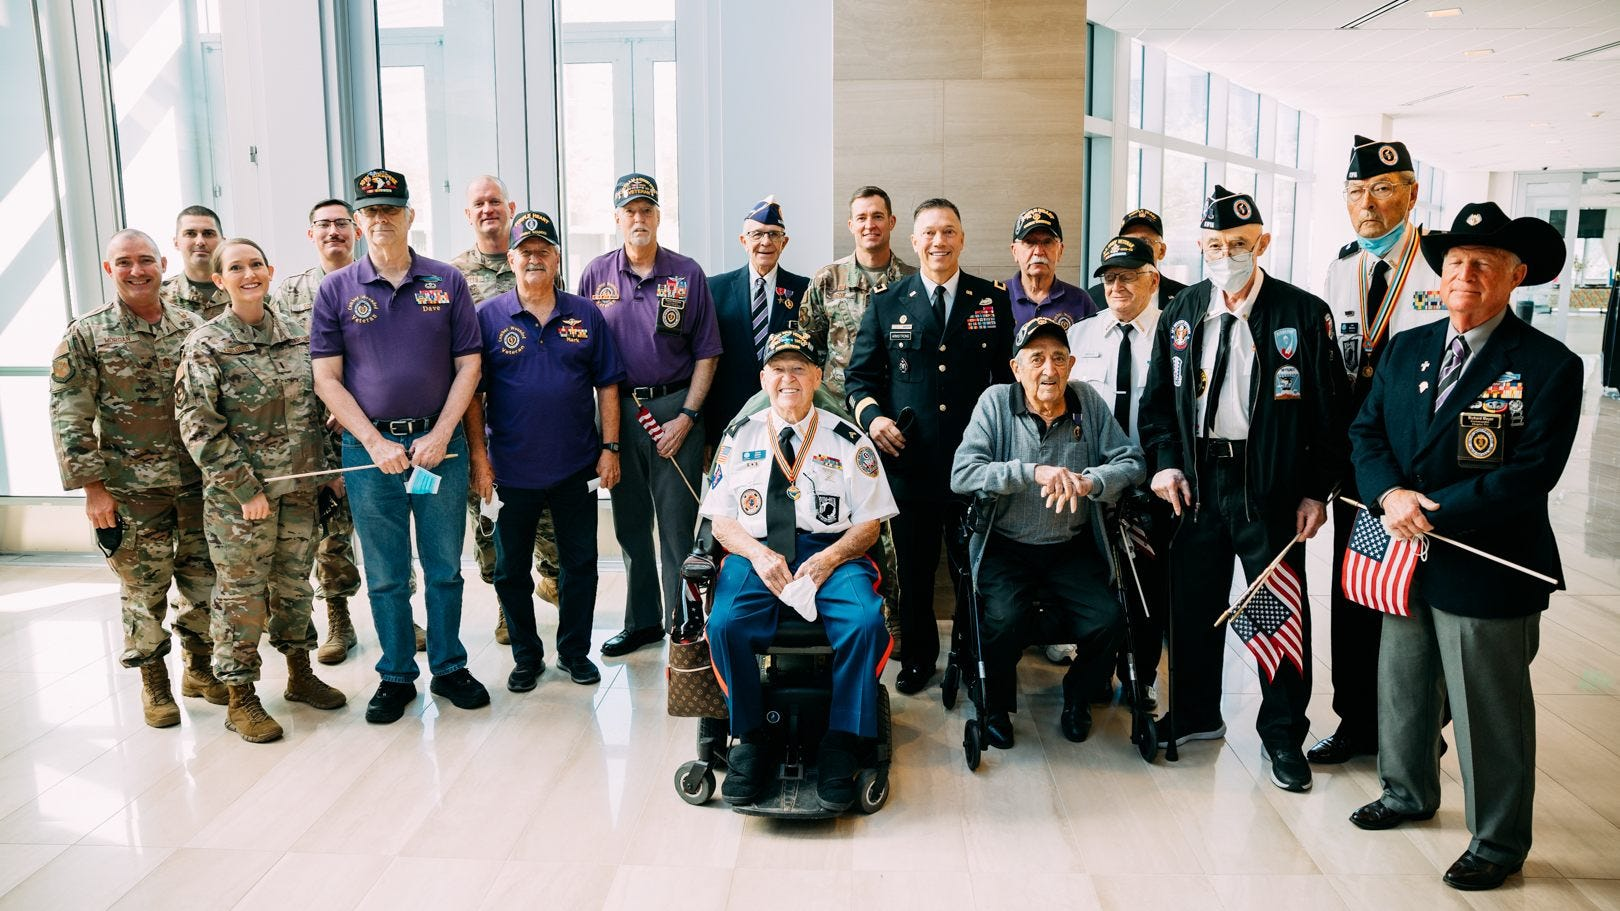 Wounded on D-Day, veteran receives long-awaited Purple Heart